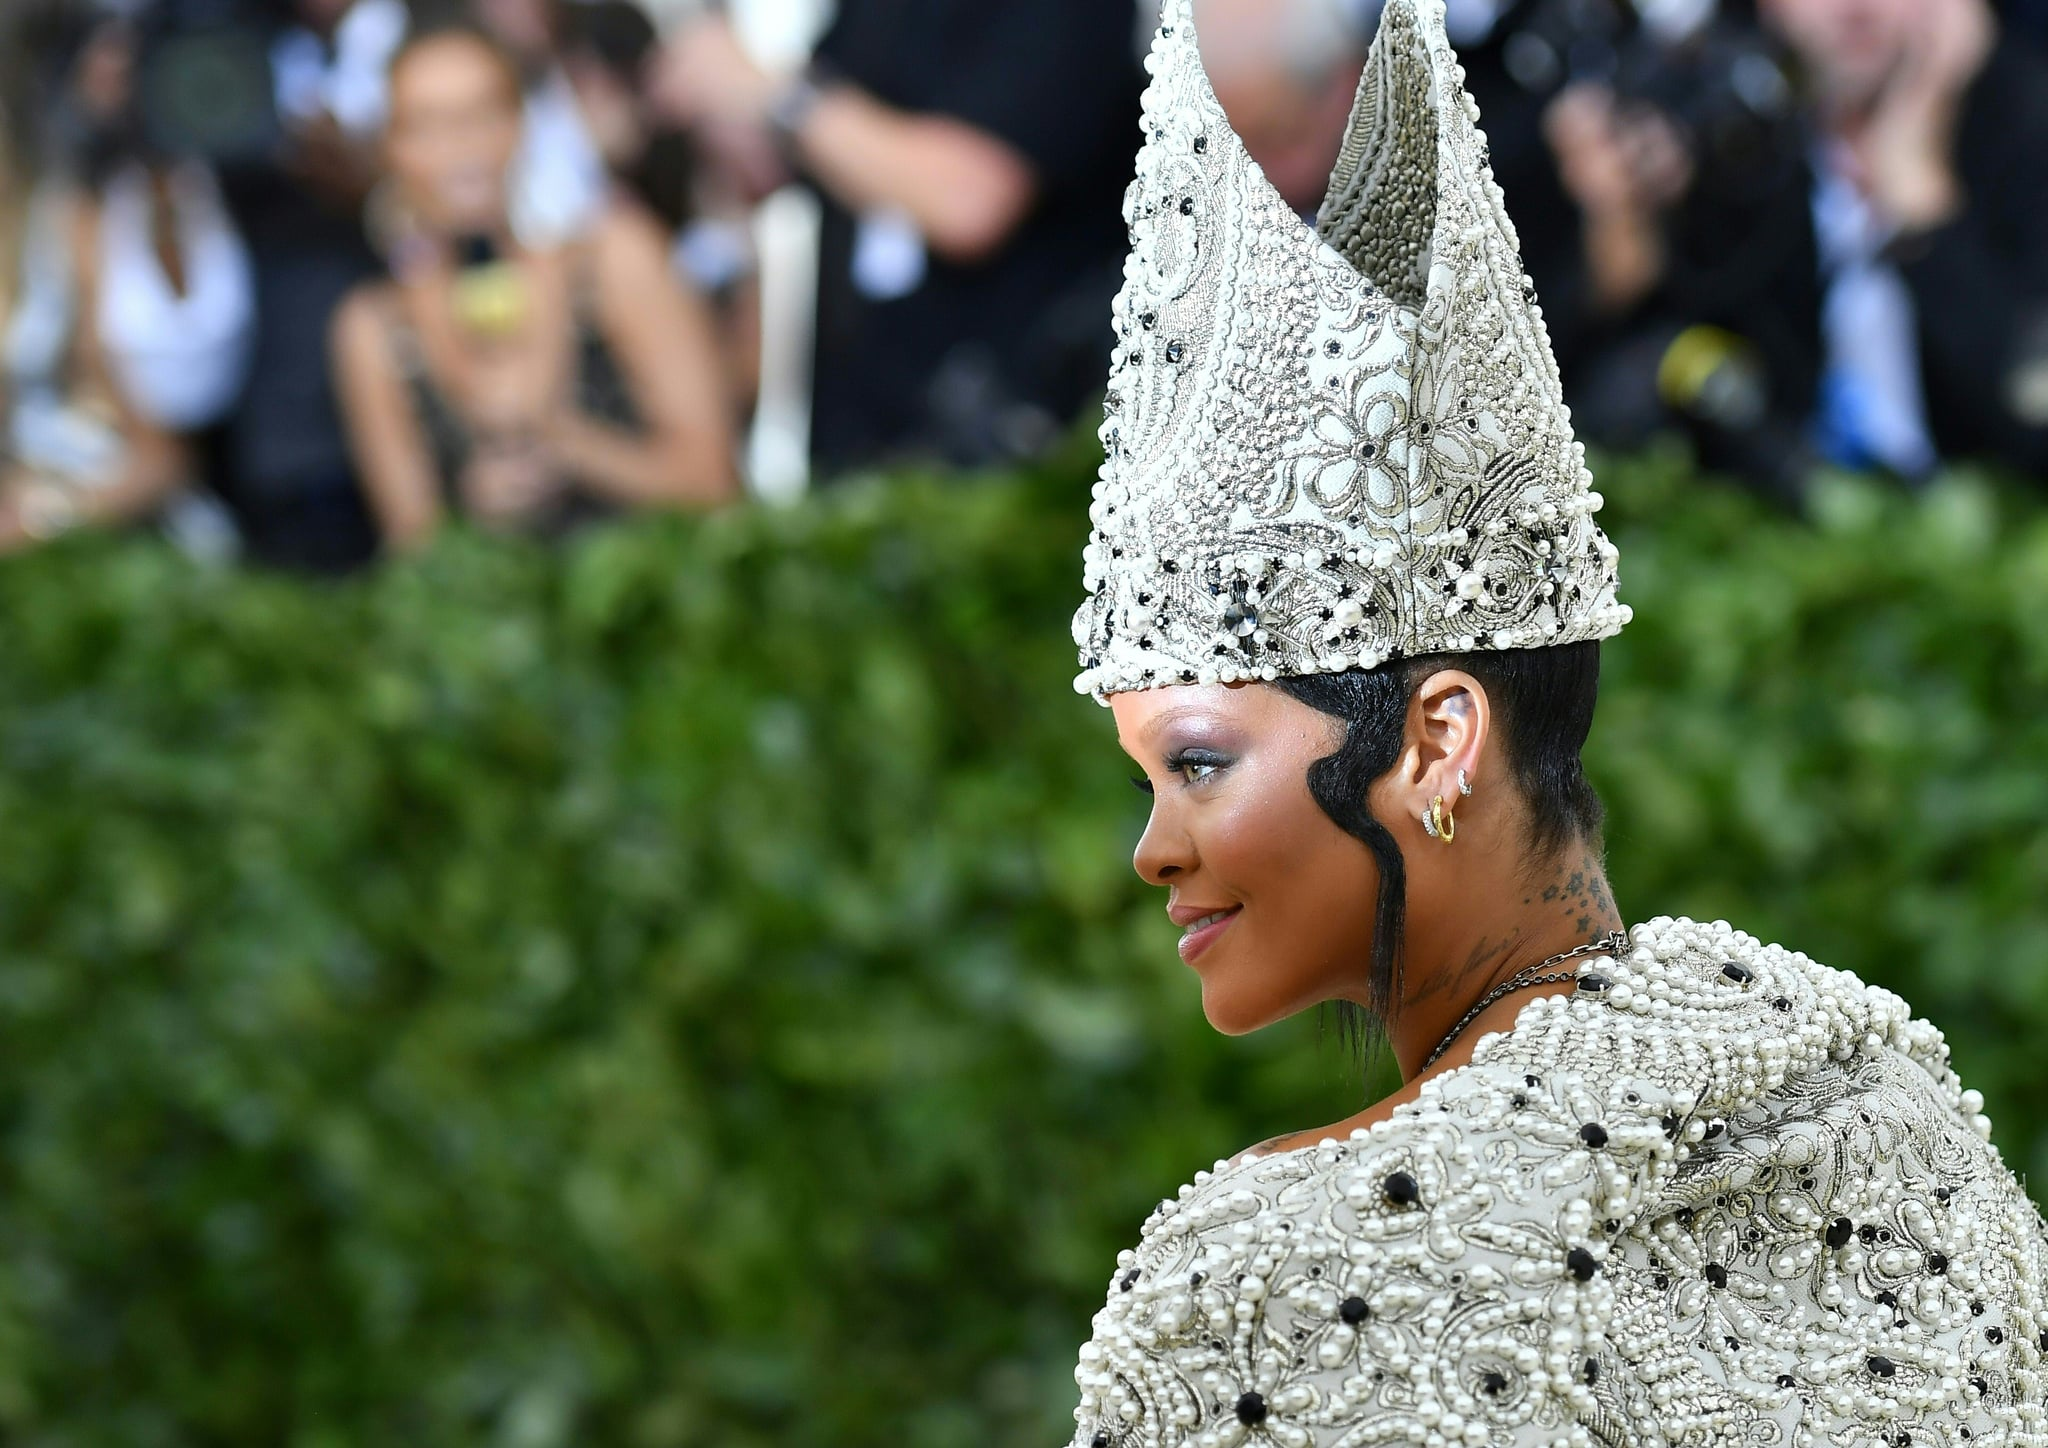 Rihanna arrives for the 2018 Met Gala on May 7, 2018, at the Metropolitan Museum of Art in New York. - The Gala raises money for the Metropolitan Museum of Arts Costume Institute. The Gala's 2018 theme is Heavenly Bodies: Fashion and the Catholic Imagination. (Photo by Angela WEISS / AFP)        (Photo credit should read ANGELA WEISS/AFP via Getty Images)